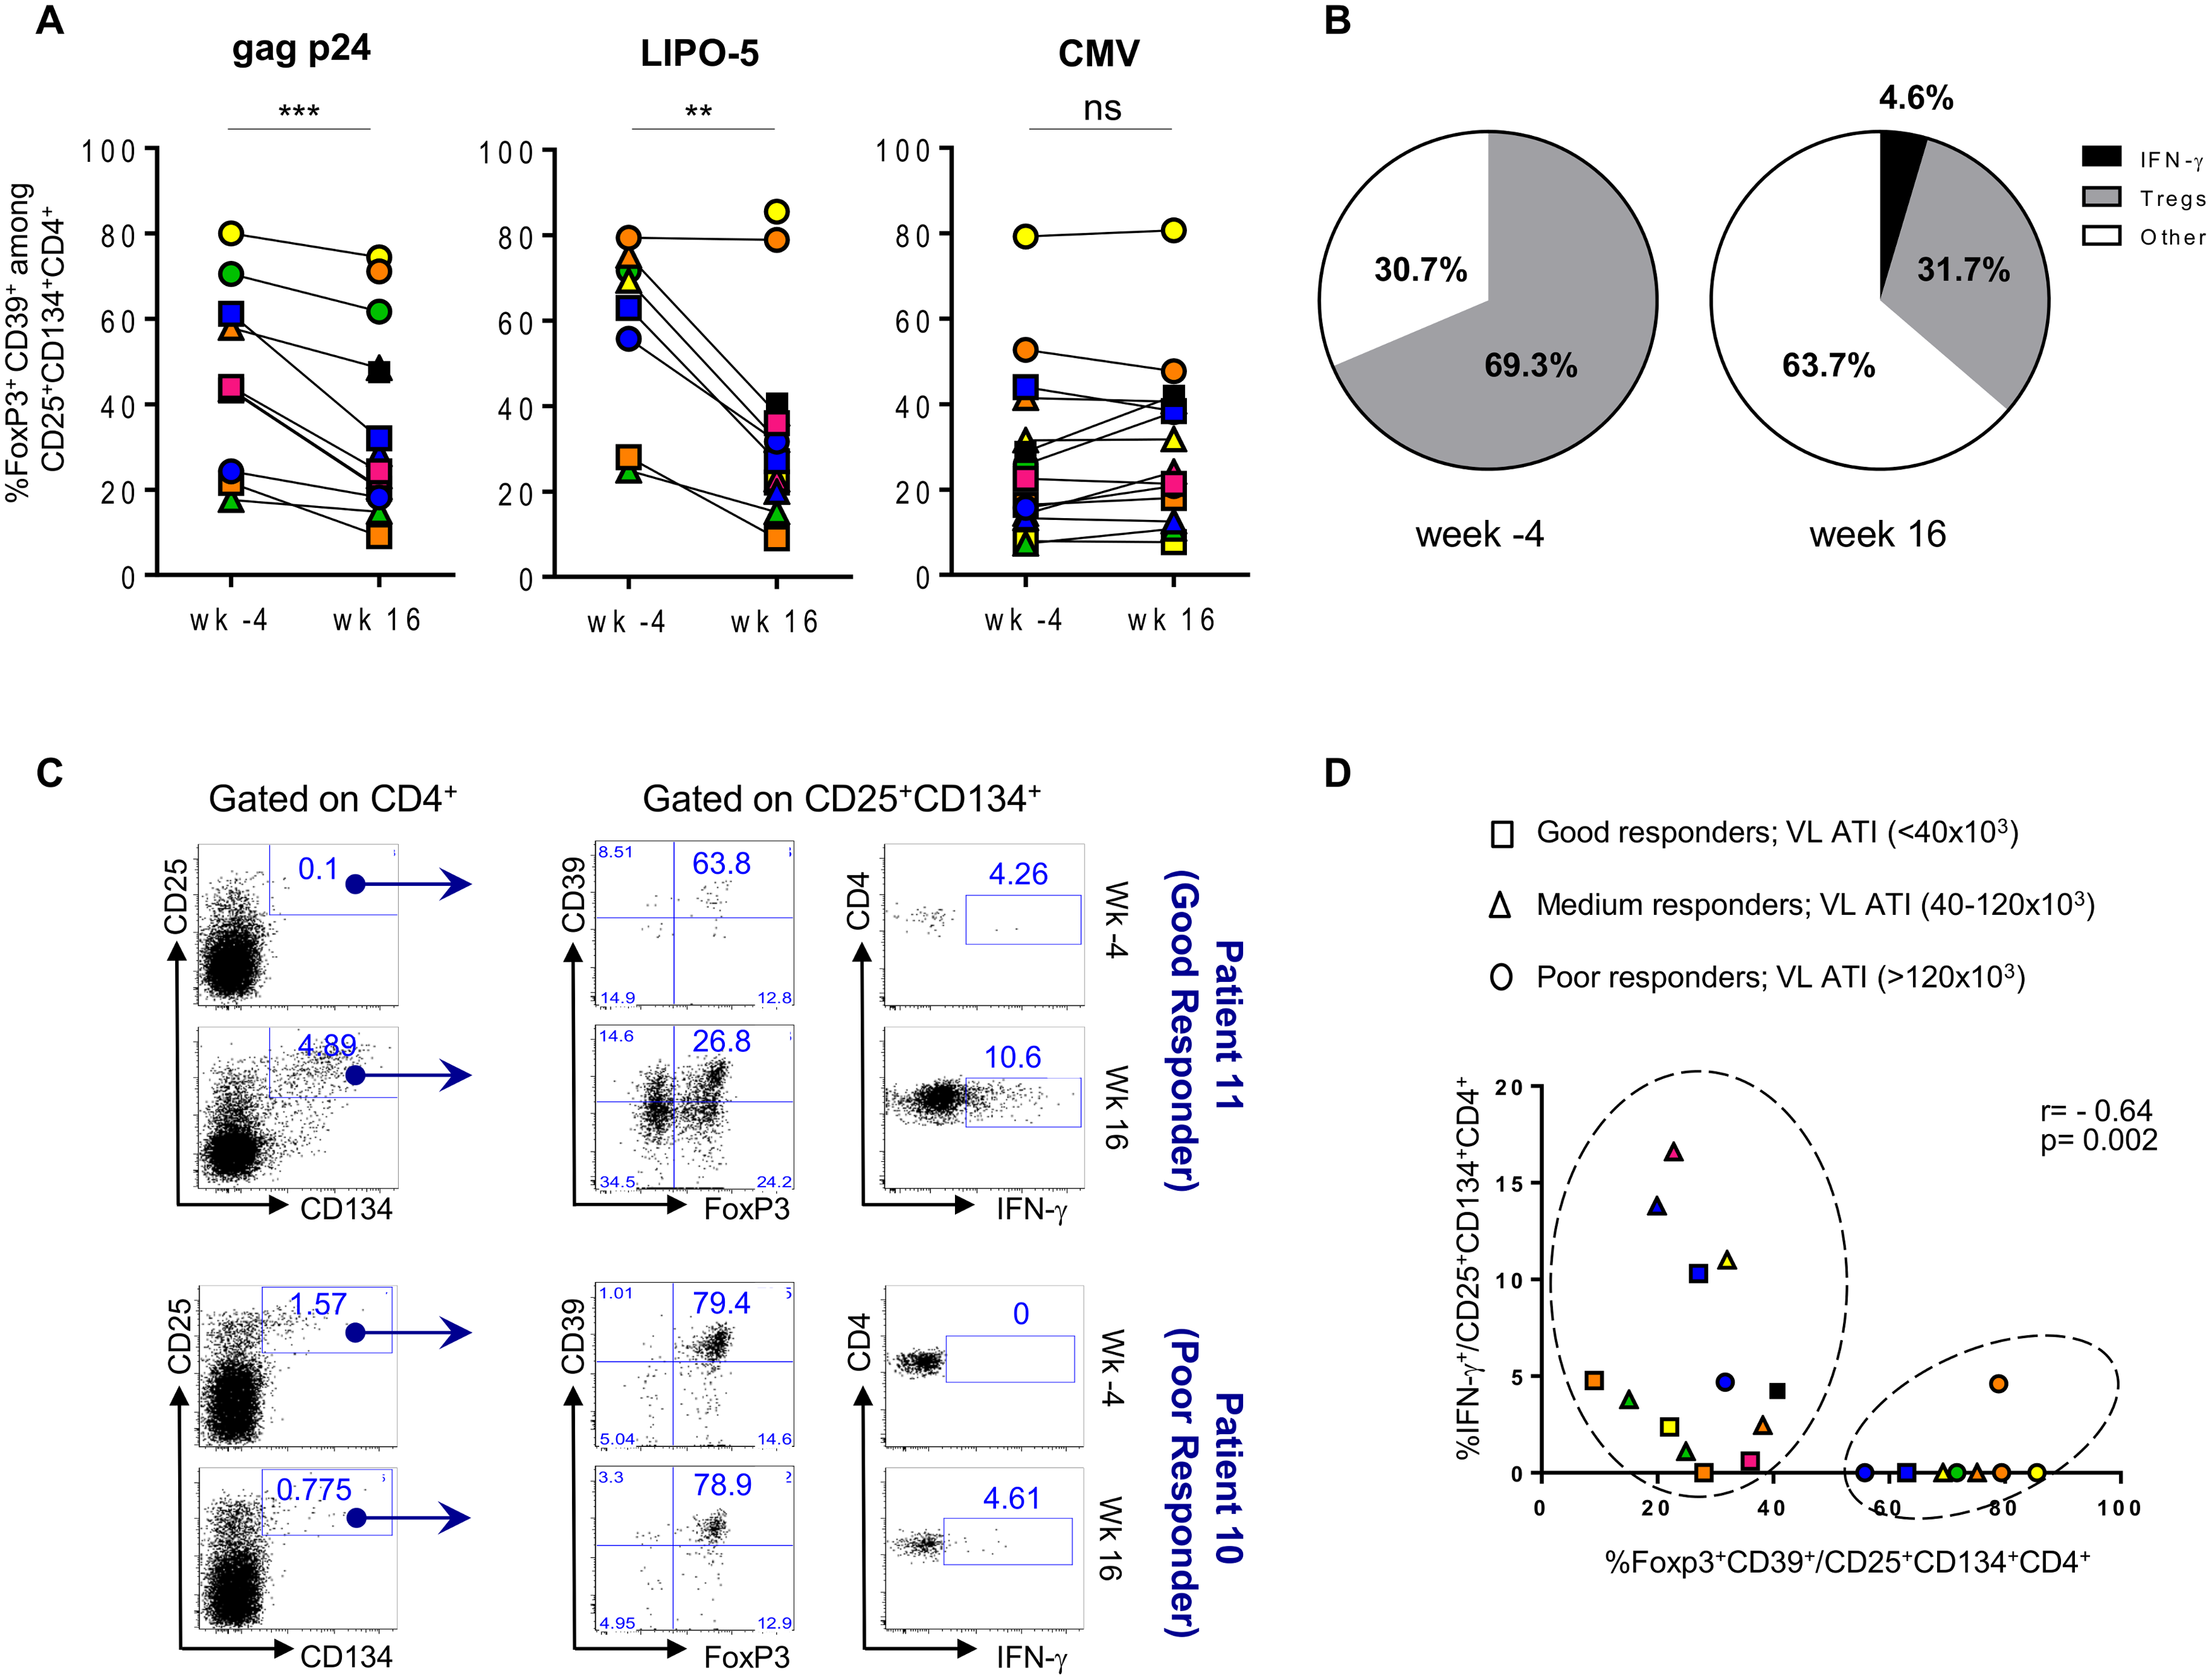 HIV-specific Tregs/Teffs ratio is affected by vaccination.